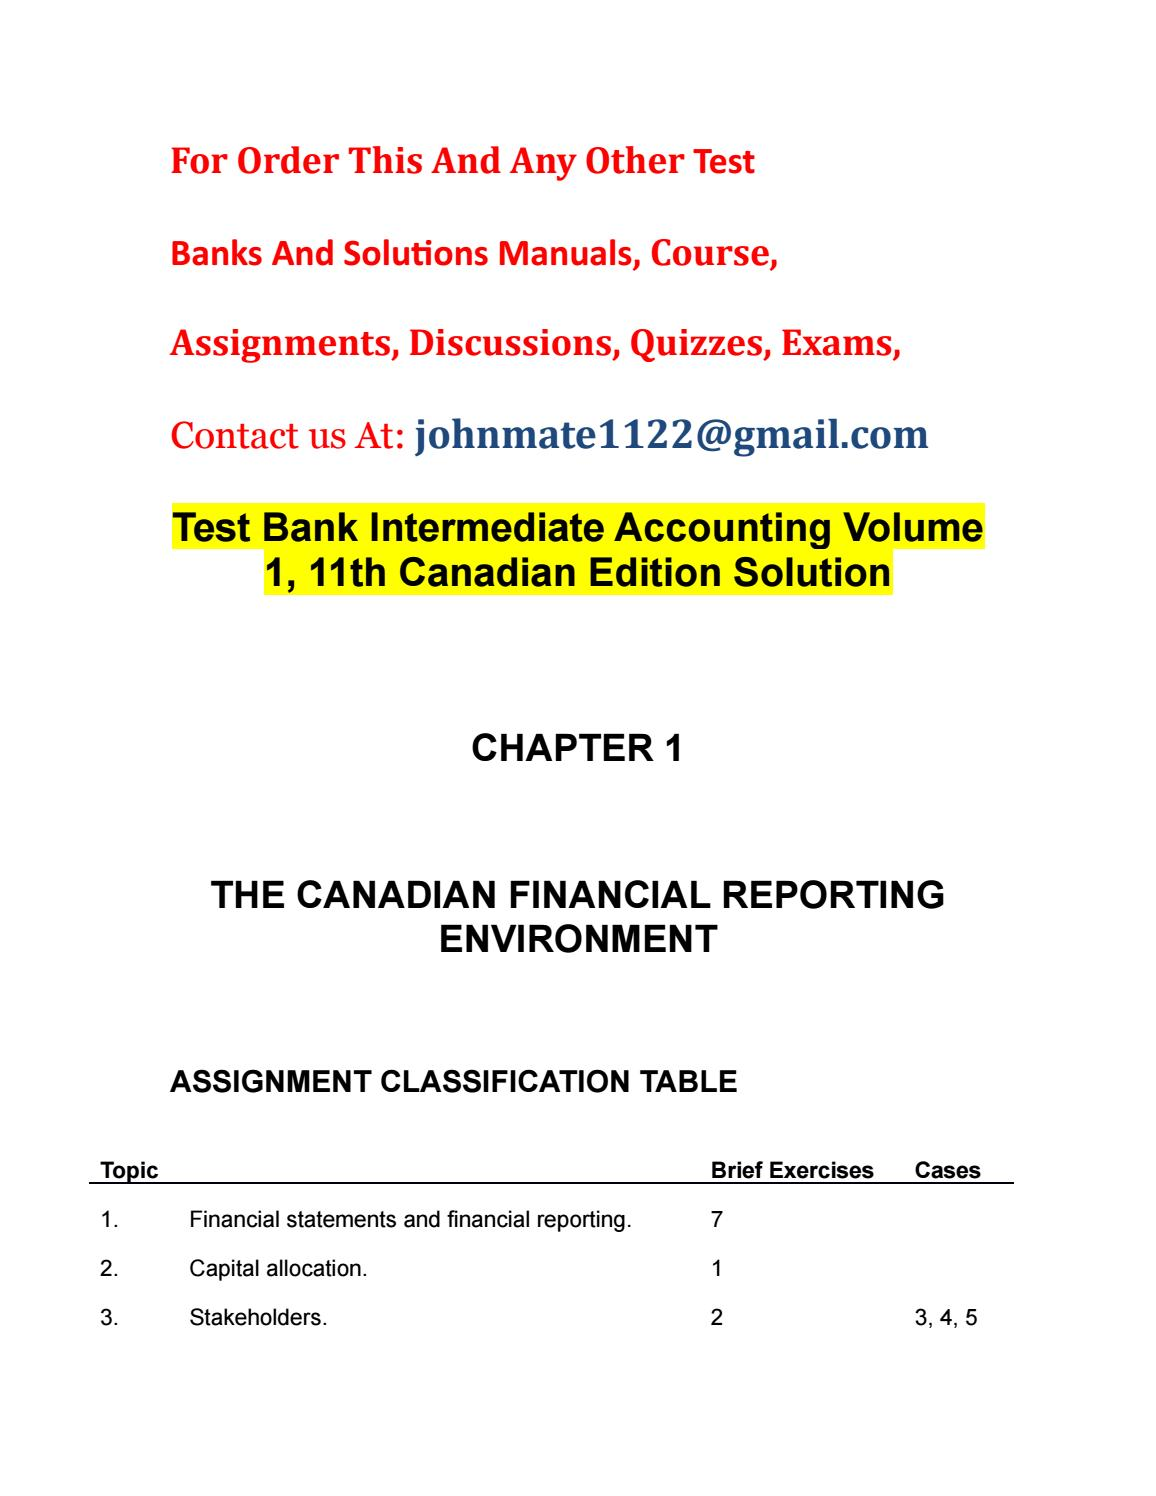 Test bank intermediate accounting volume 1, 11th canadian edition solution  by LewisPipkin - issuu